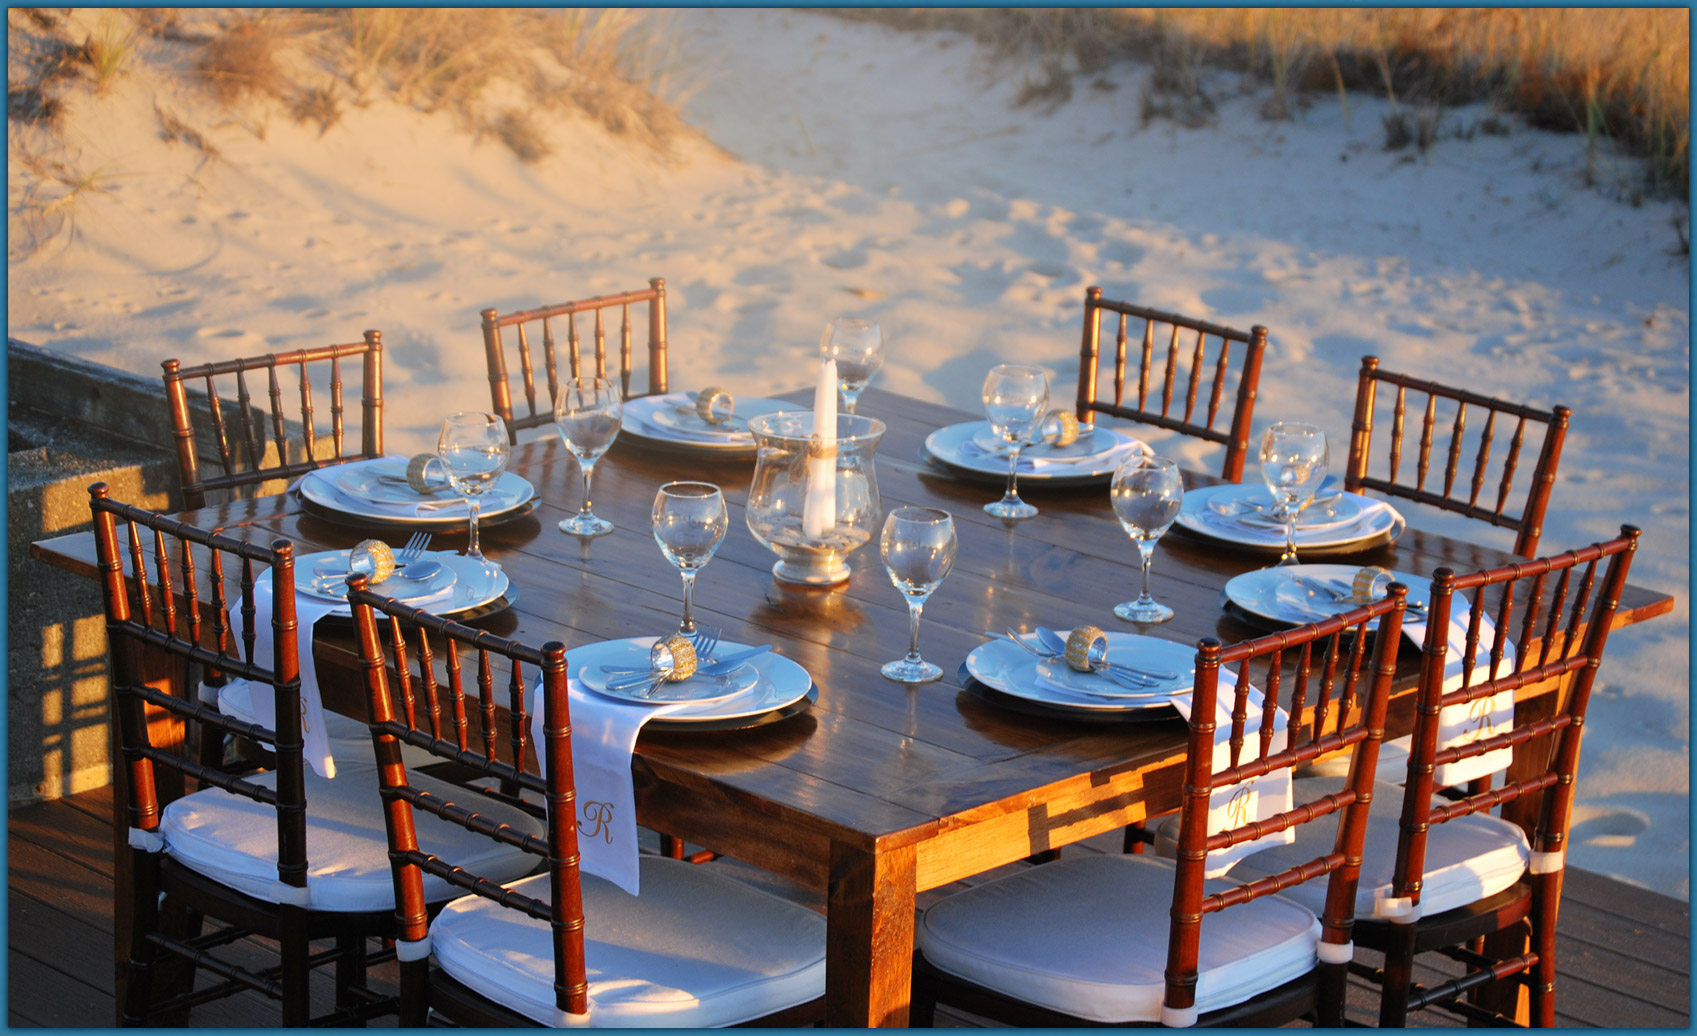 chair cover rentals in chennai design online tables for party wedding or business cape cod new england rfwbs slide